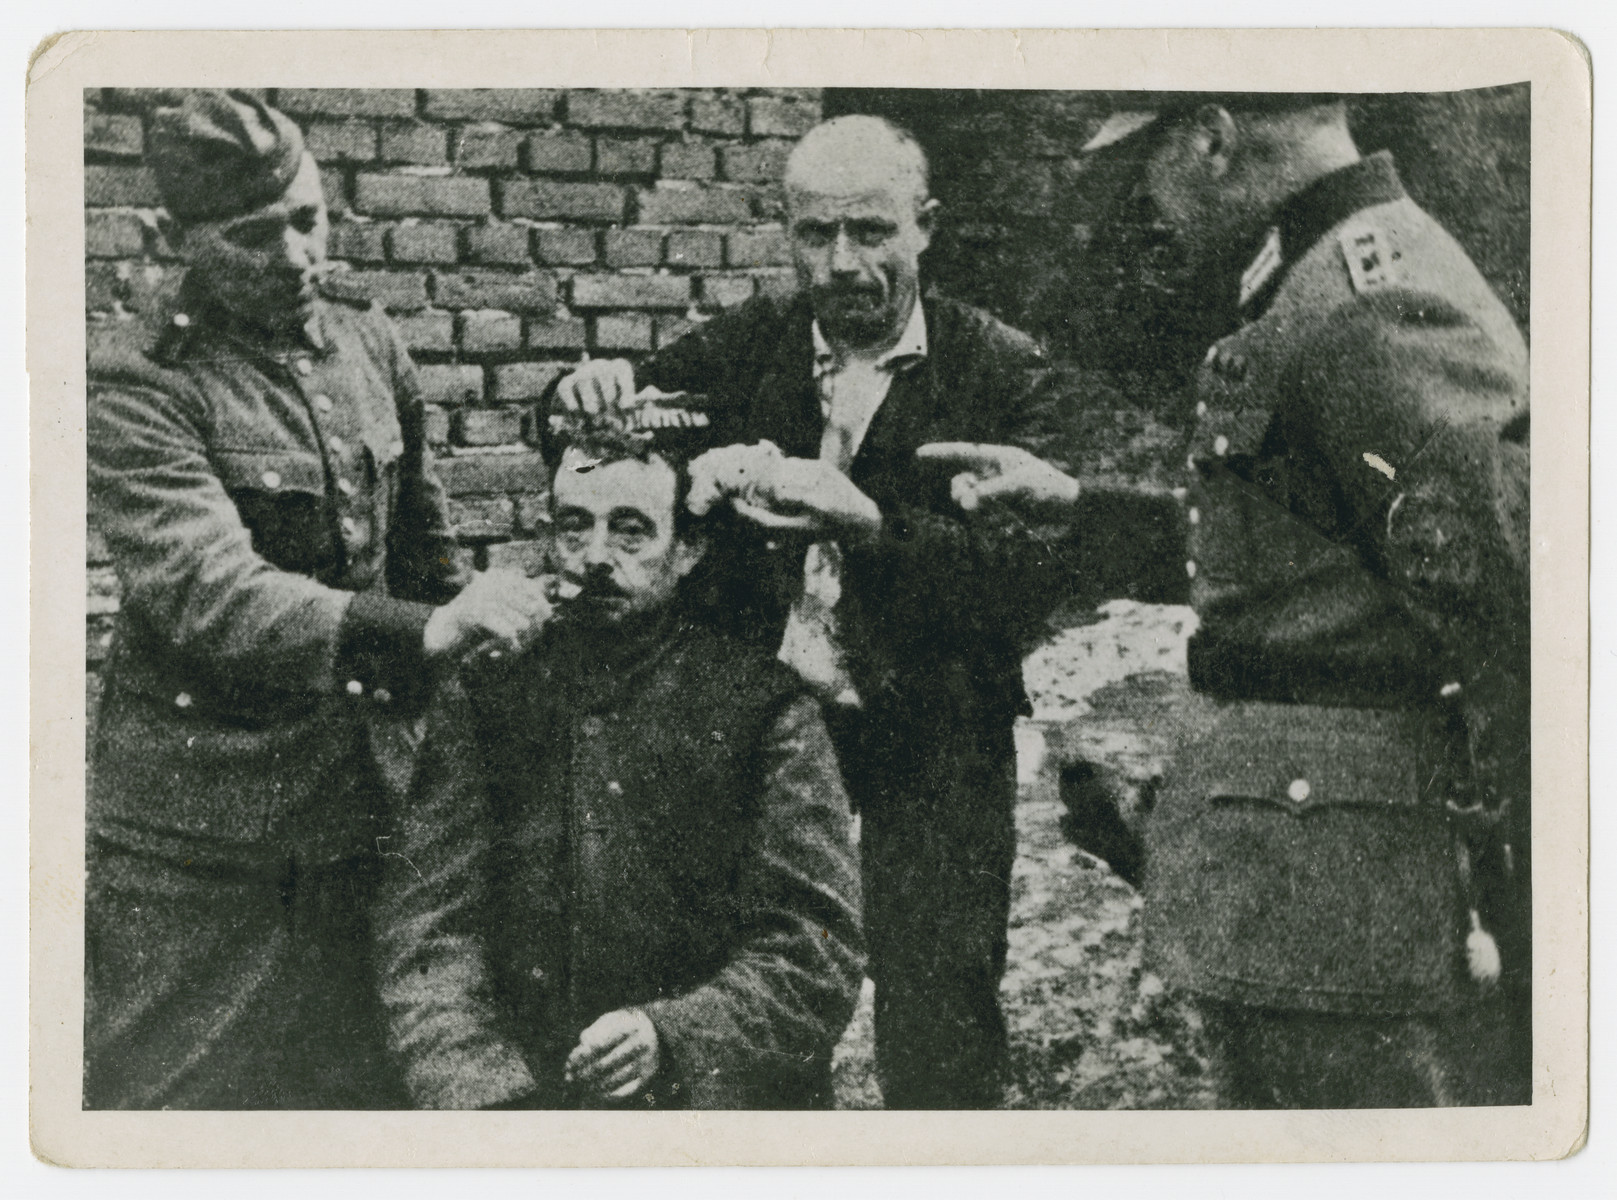 German soldiers force a man to shave the beard and hair of another